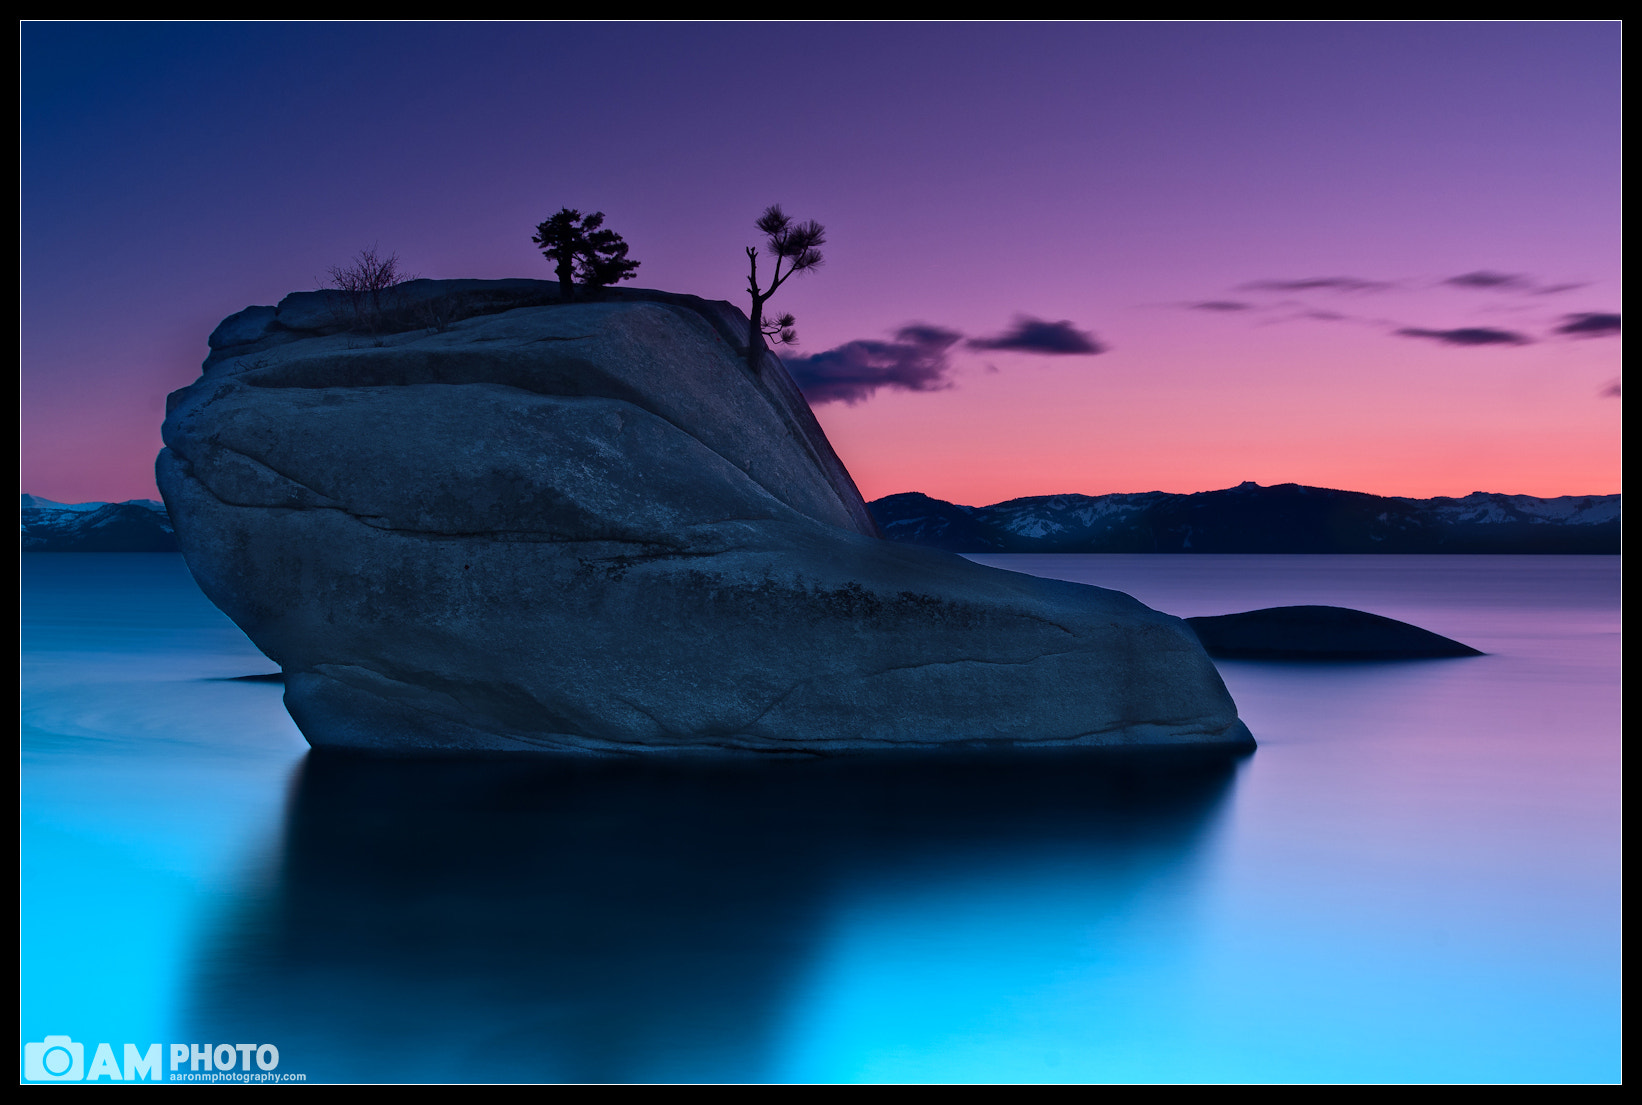 Photograph Bonsai Rock by Aaron M on 500px